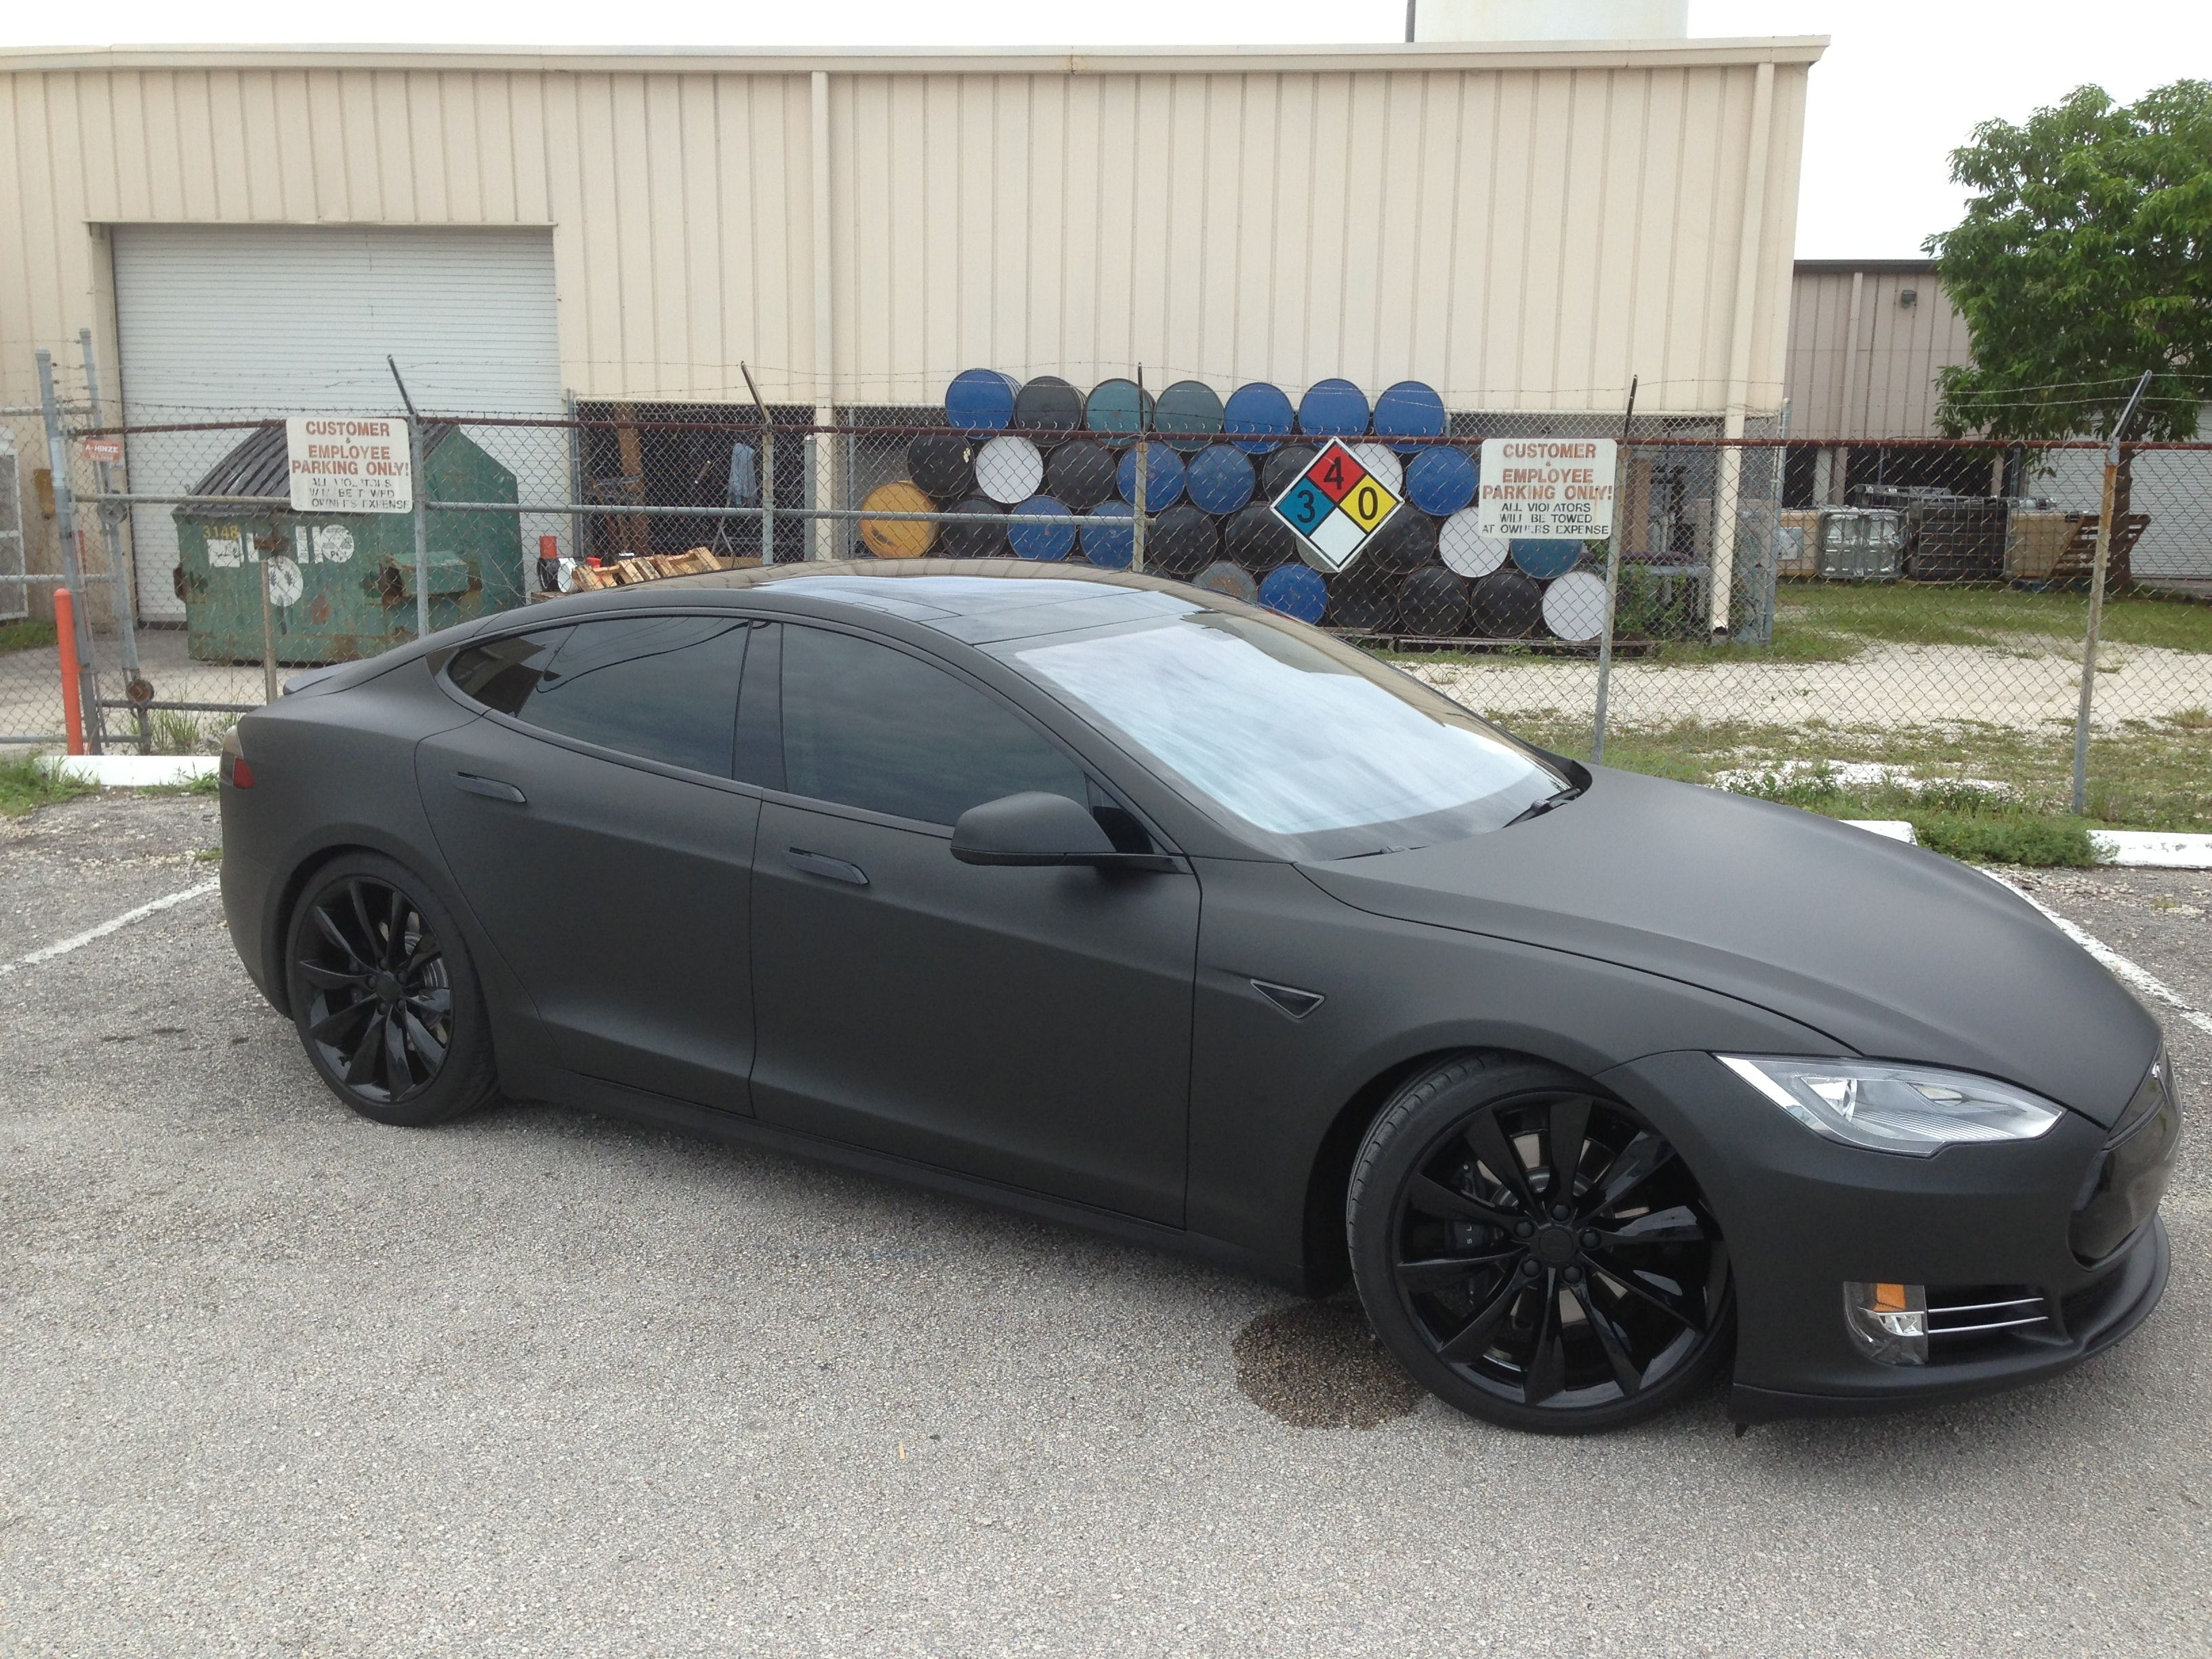 2017 Tesla Model S P85 3m Matte Black Blacked Out Chrome Powder Coated 21 Wheels